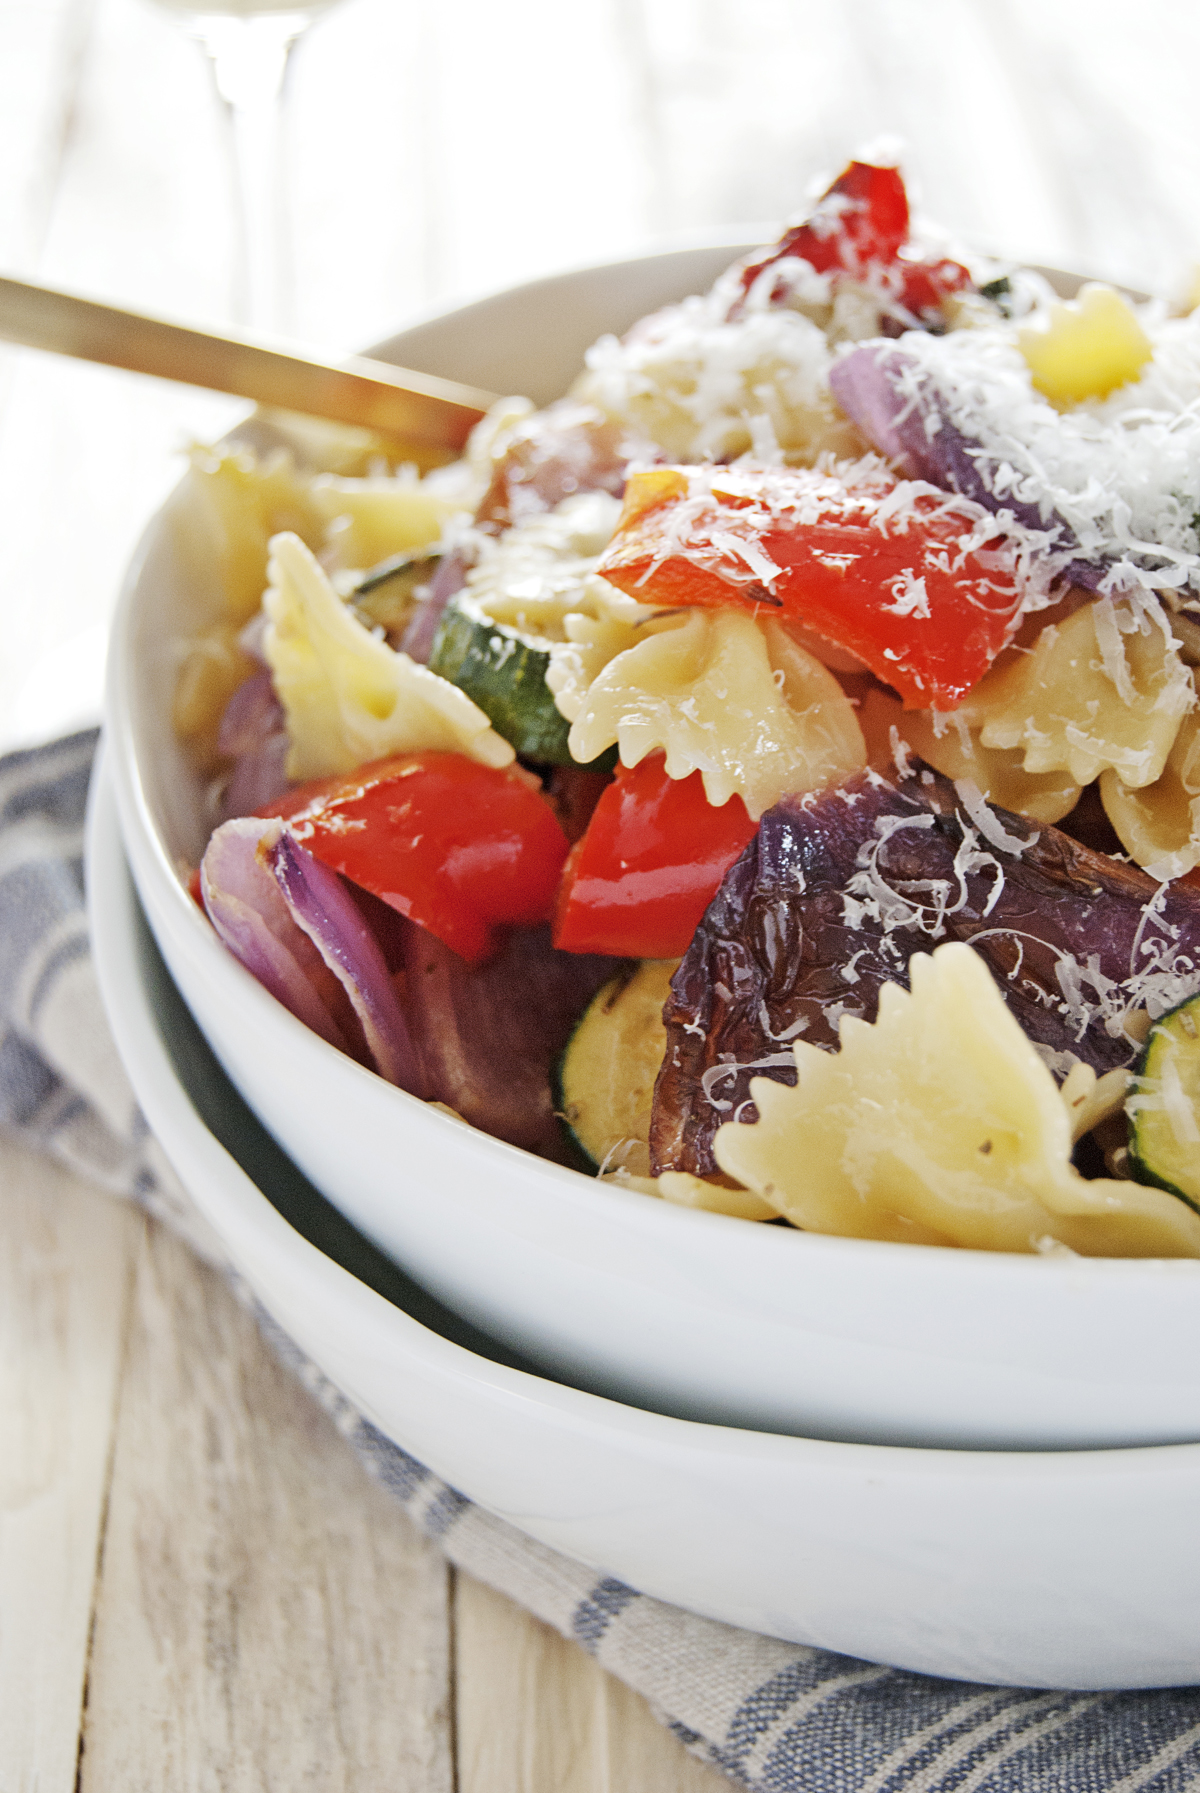 This oven roasted vegetable pasta is a delightfully simple yet tasty vegetarian meal, with oven roasted zucchini, red bell peppers, and red onion.